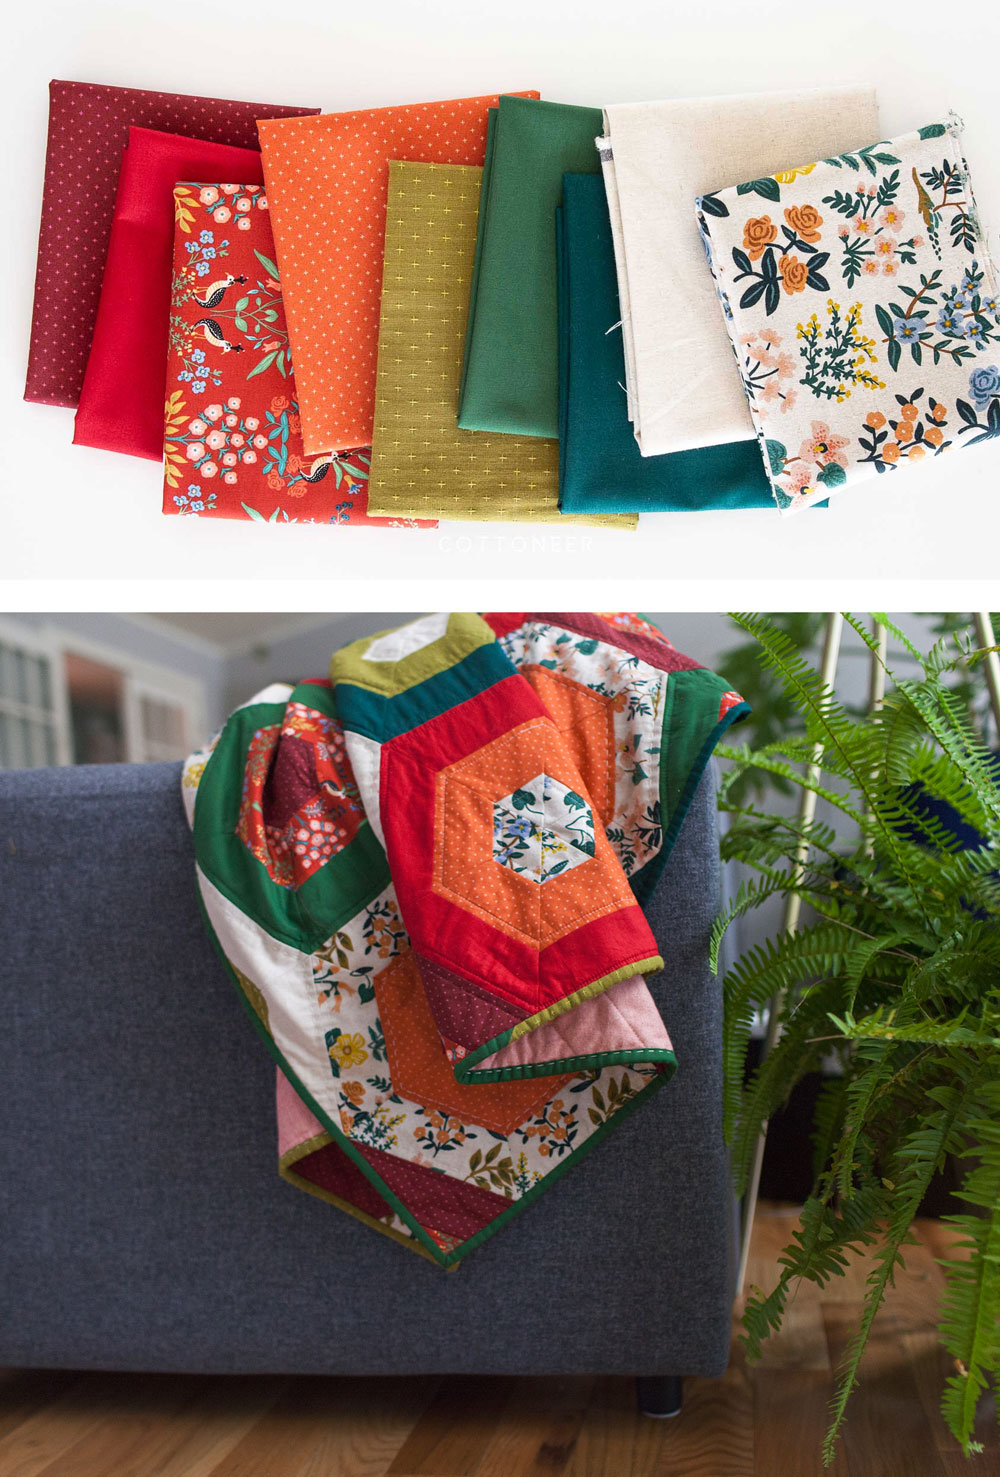 It's easy to get in the holiday spirit and get your Christmas quilting done with a pattern like Hexie Stripe. It's a vintage design with a modern twist! To make a throw all you need are 9 different 1/2 yd. cuts of fabric. Mix red and green solids with some floral prints for a beautifully festive quilt! suzyquilts.com #christmasquilt #handmadechristmas